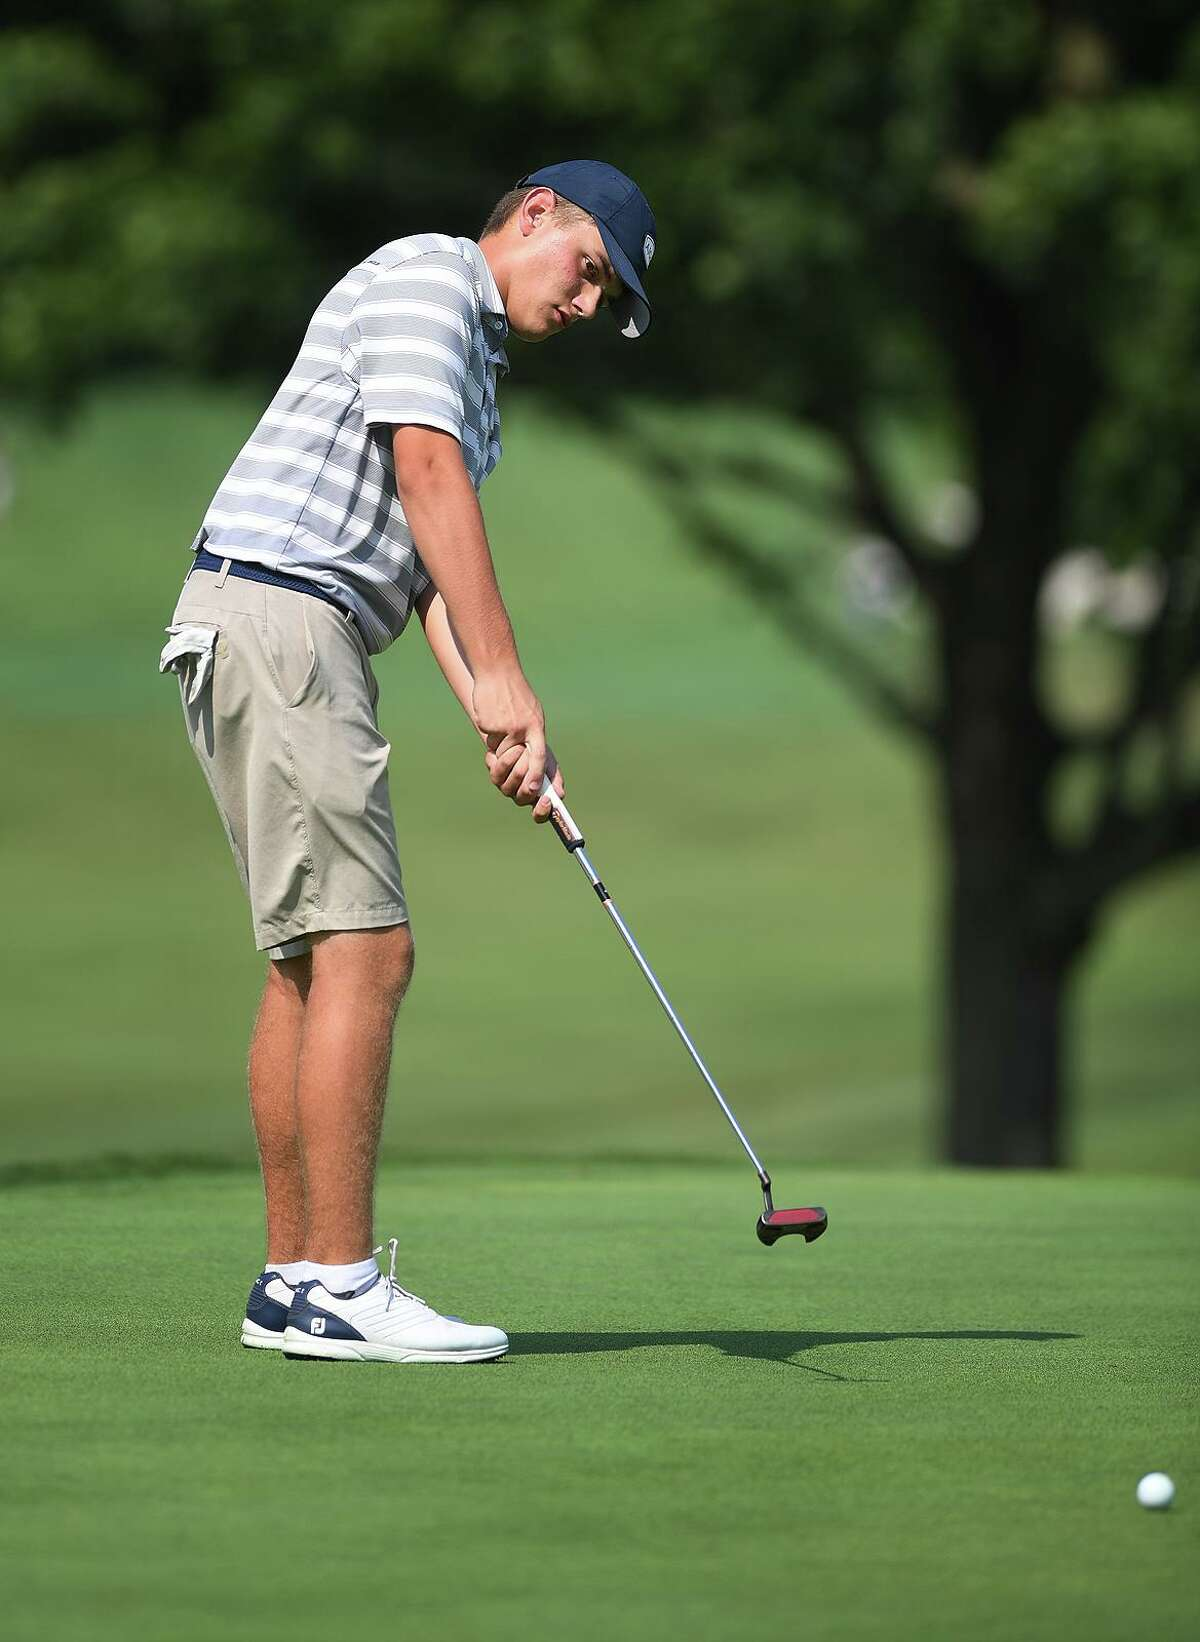 Alex Elia of Silver Spring Country Club putts on the 13th green during quarterfinal match play at the 50th Jay Borck Jr. Golf Tournament at Brooklawn Country Club in Fairfield, Conn. on Tuesday, July 30, 2019.